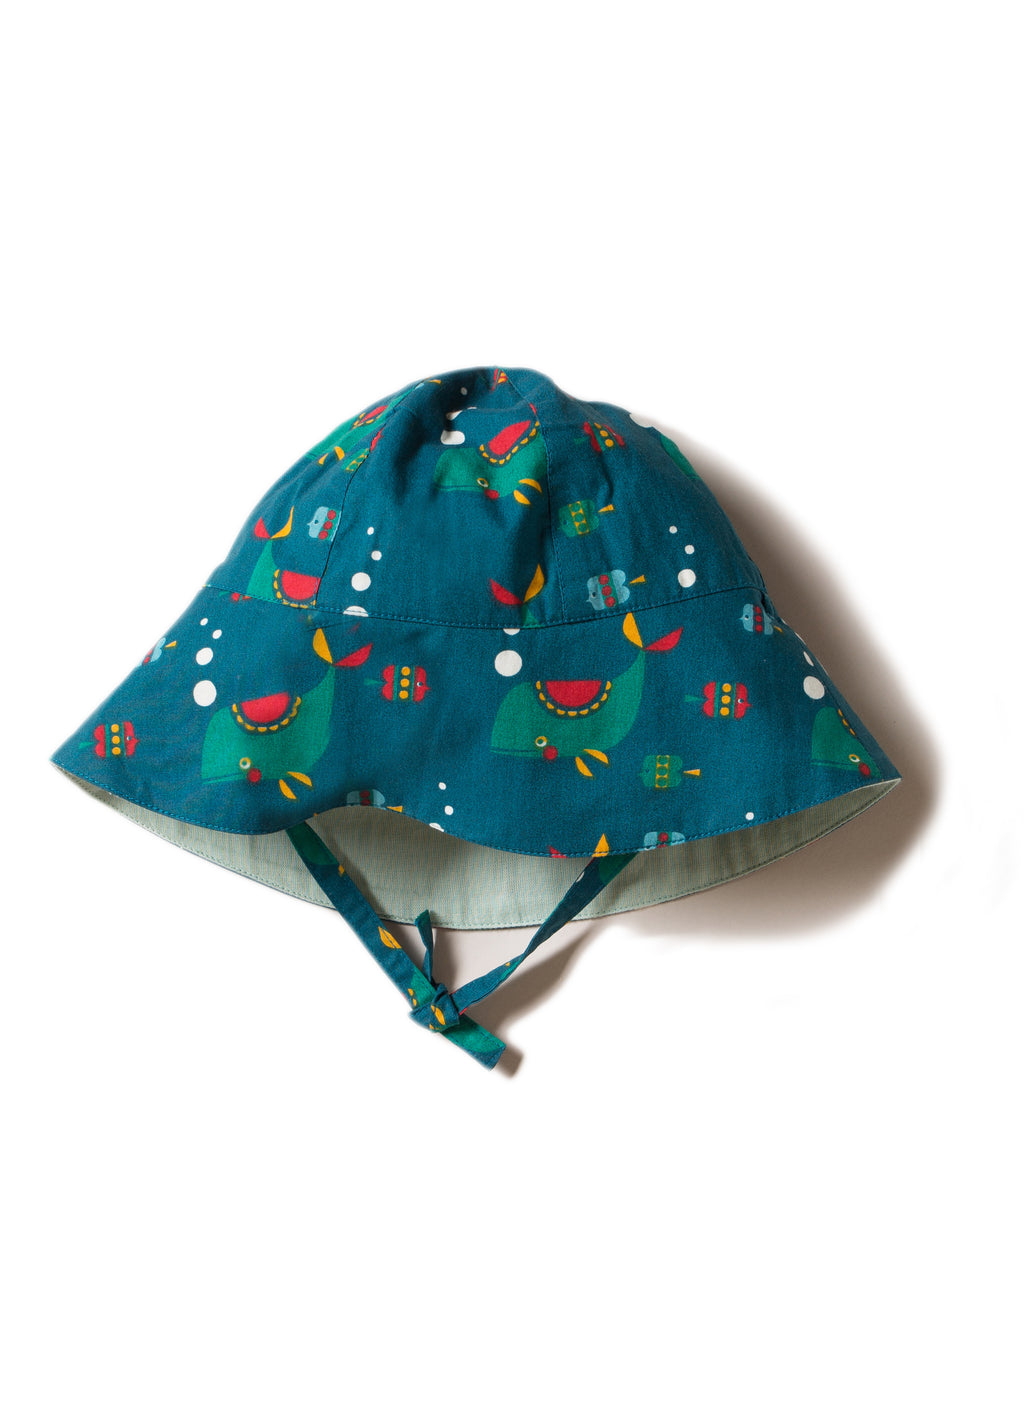 Whale of a Time Reversible Sun Hat